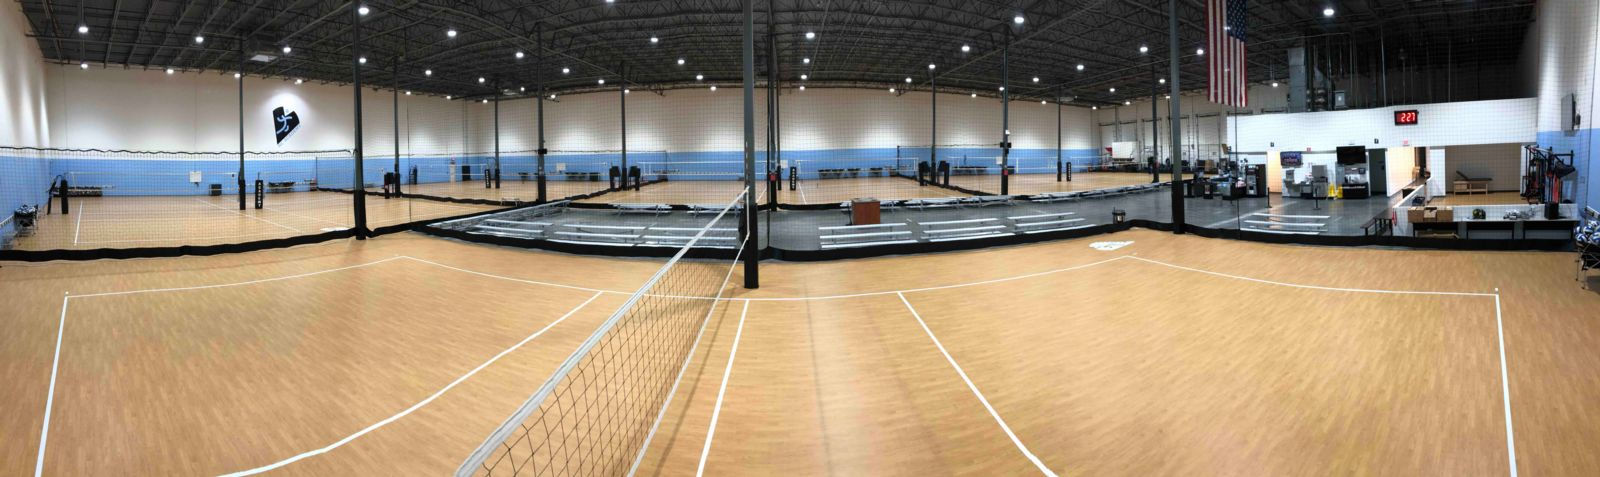 NC Volleyball Academy - powered by Oasys Sports